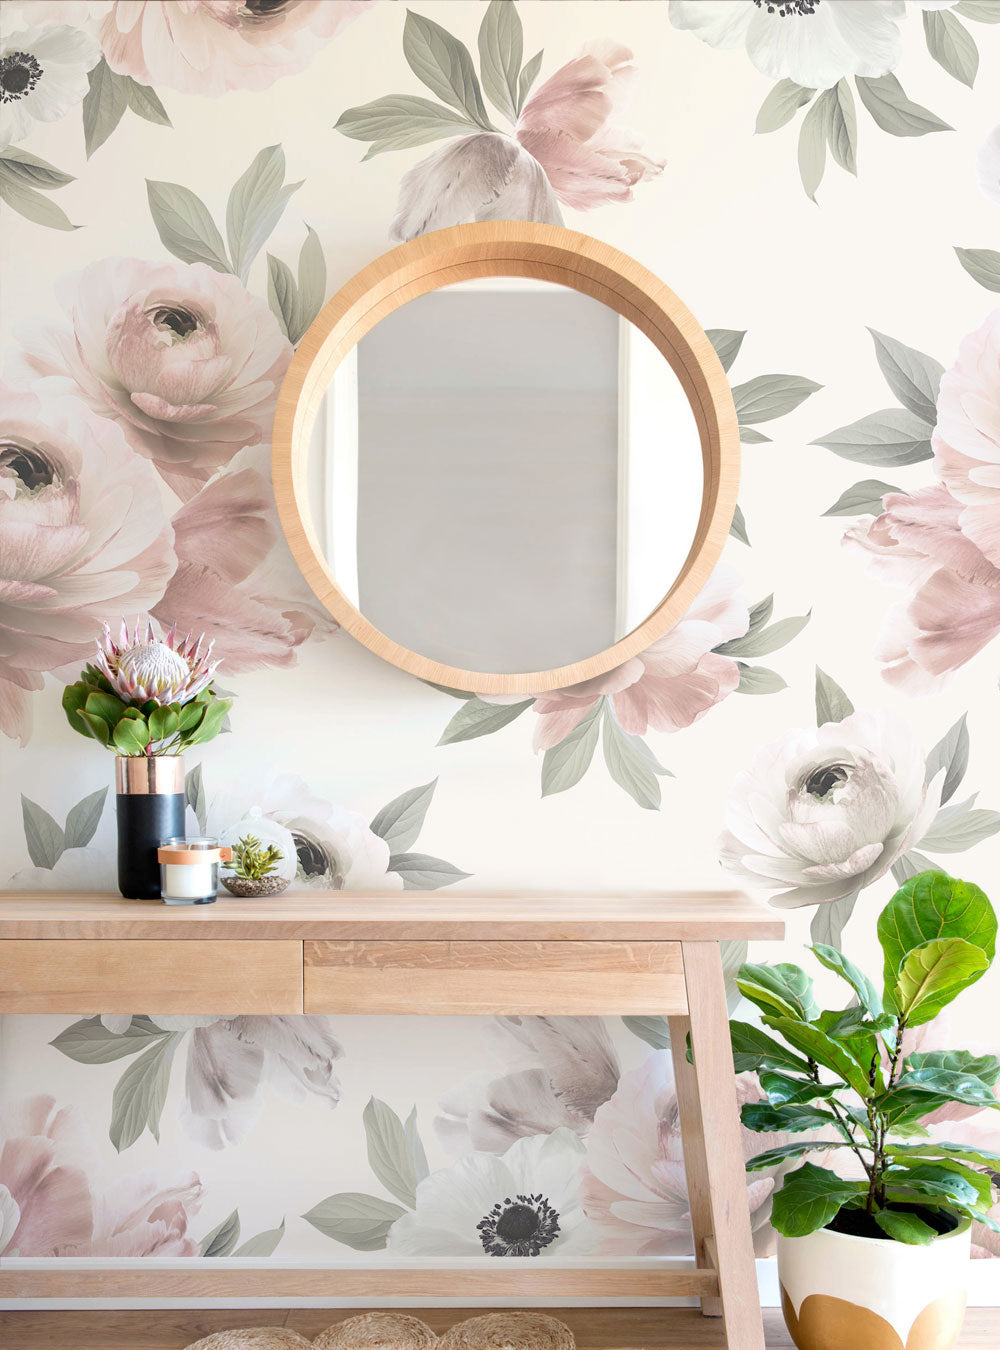 Floral Mural Wall Art Wallpaper - Peel and Stick